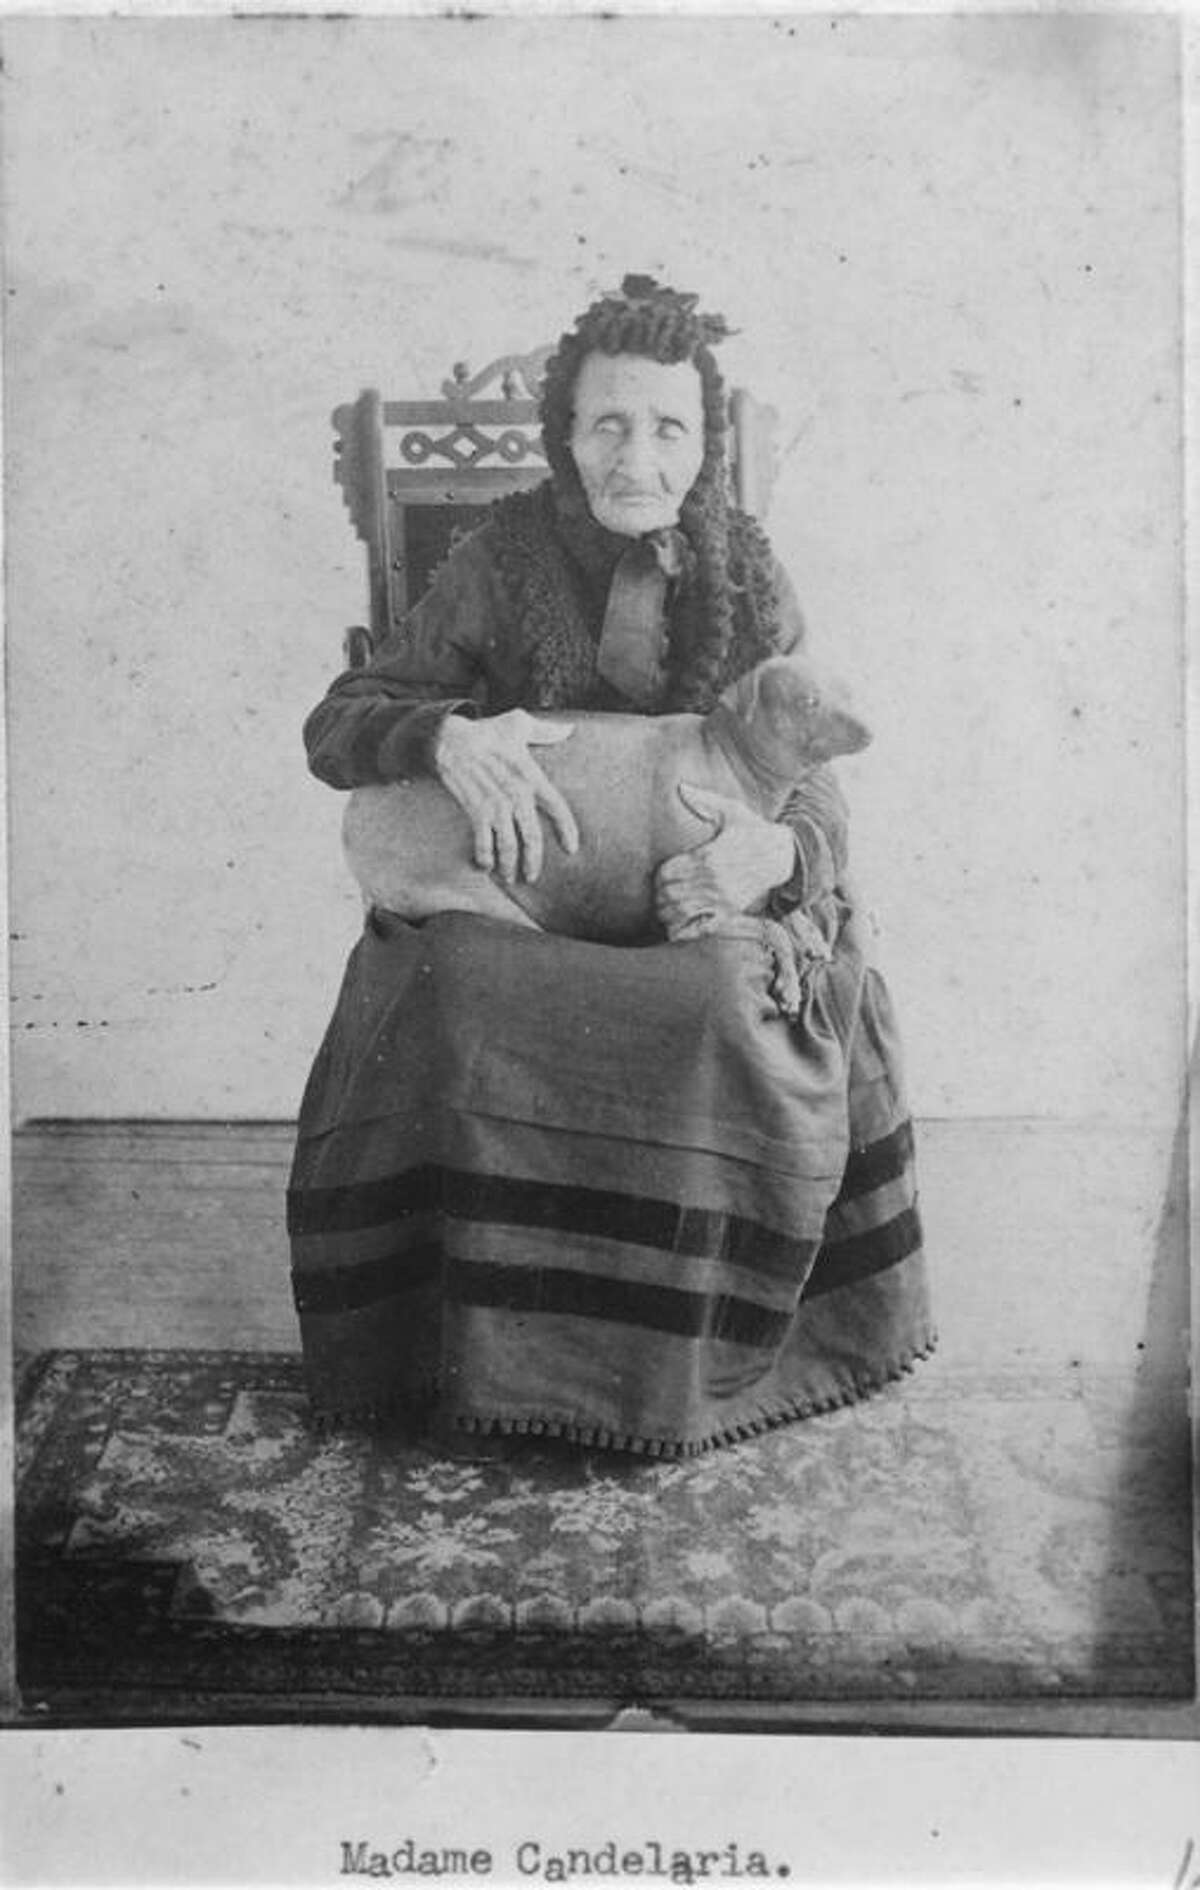 Maria Andrea Castañon Villanueva, also known as Madam Candelaria In this undated photo, Madam Candelaria poses with her dog. The woman, who claimed to have been nursing the ailing Jim Bowie when he was killed by Santa Anna's army at the Battle of the Alamo, lived to be 113. She said her dog slept on her feet and kept her rheumatism at bay.